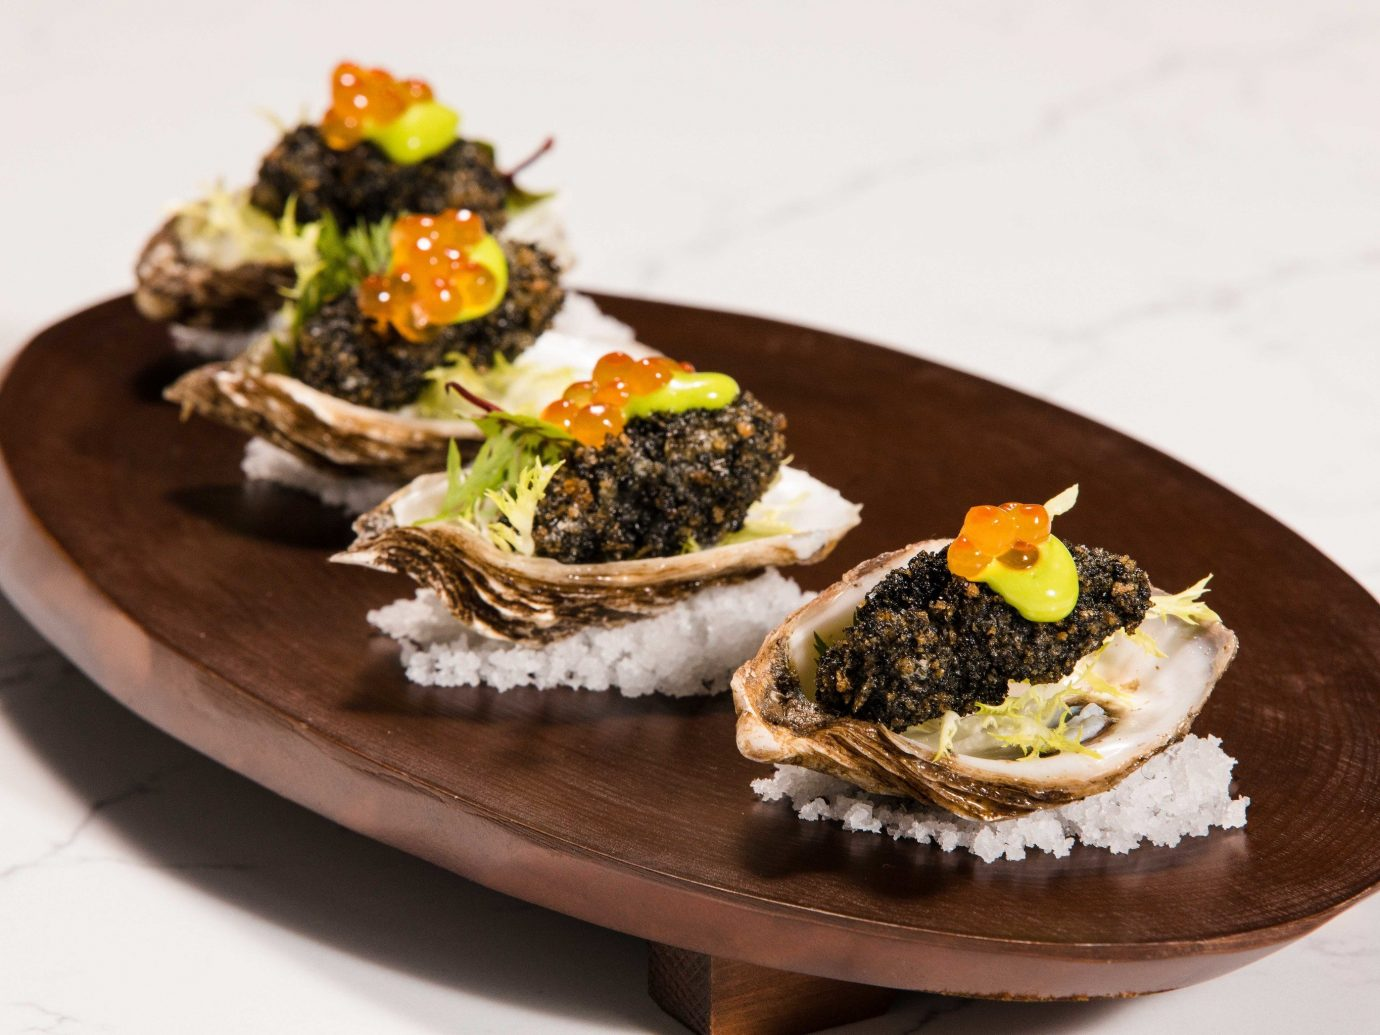 Arts + Culture Food + Drink Hotels Weekend Getaways plate table food dish oysters rockefeller appetizer oyster vegetarian food finger food Seafood sushi dessert recipe animal source foods cuisine clams oysters mussels and scallops sliced